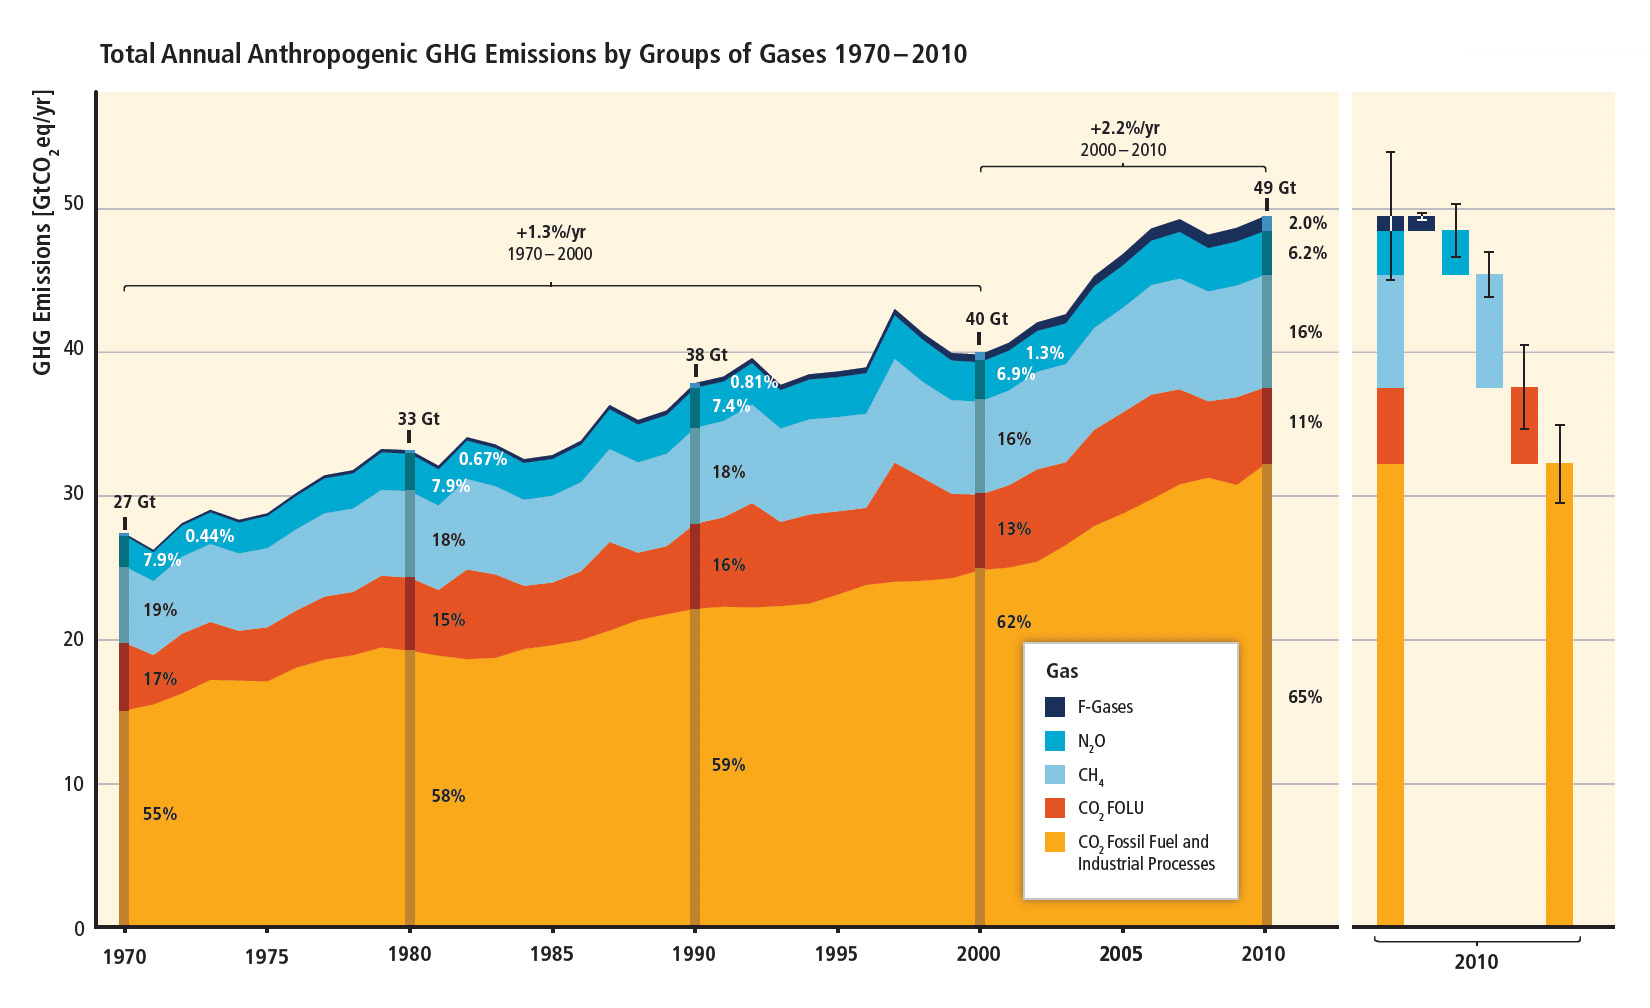 Humans are pumping increasing quantities of greenhouse gases into the atmosphere, hundreds of scientists ​conclude in the most recent report from the Intergovernmental Panel on Climate Change.